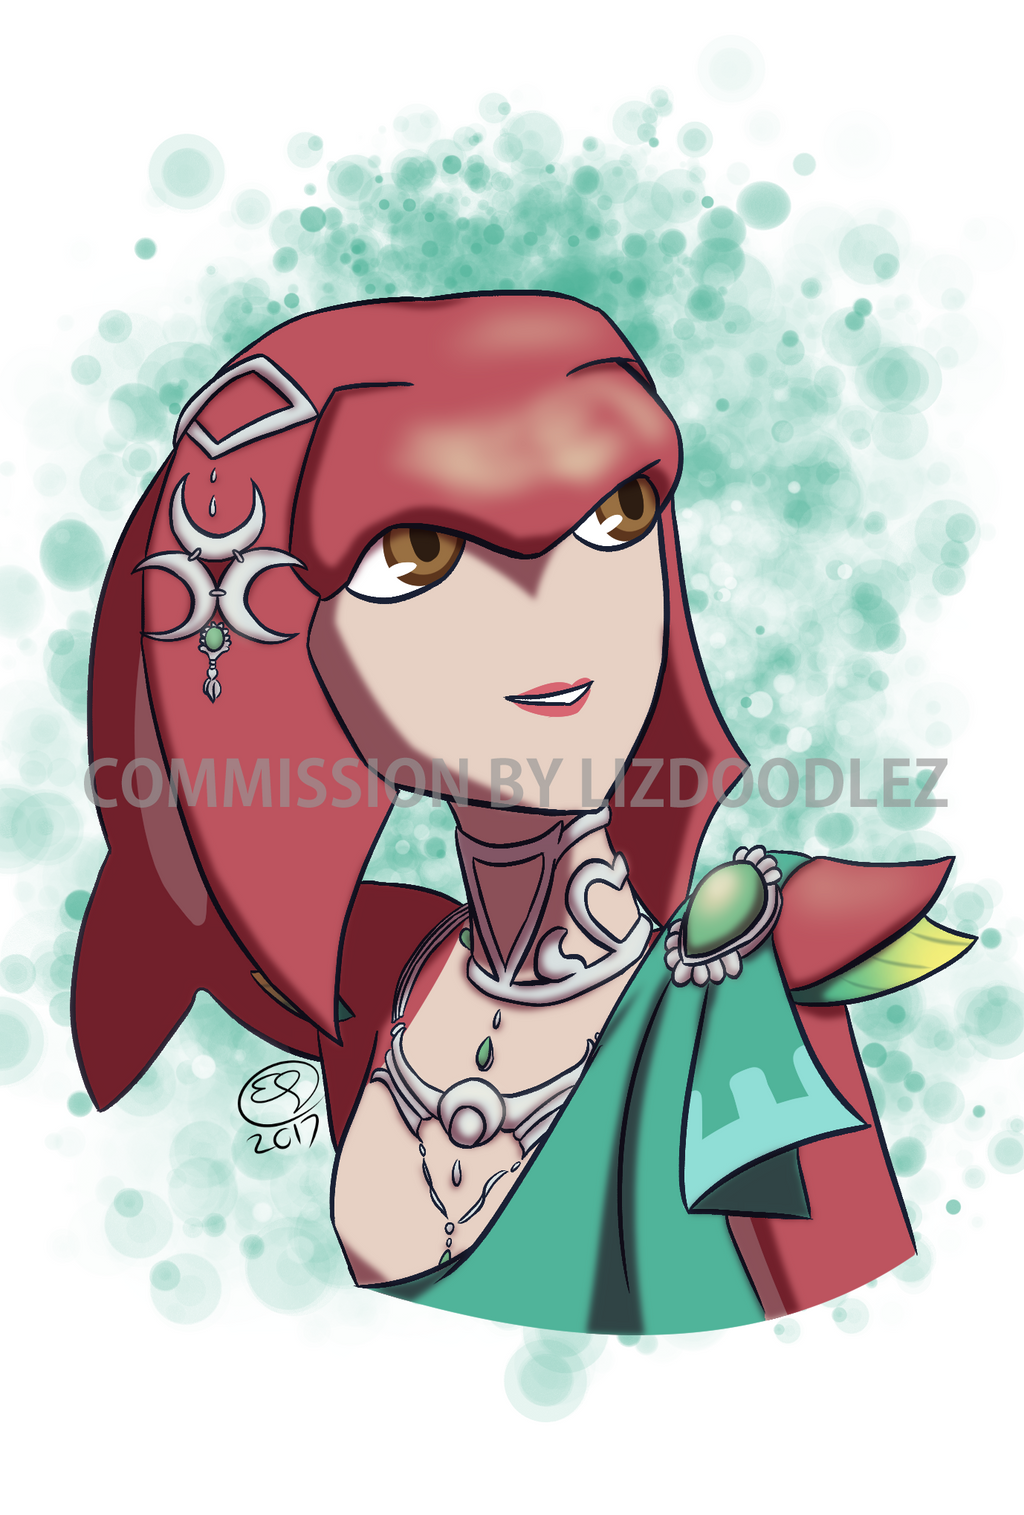 Commission: Mipha from Breath of the Wild by LizDoodlez